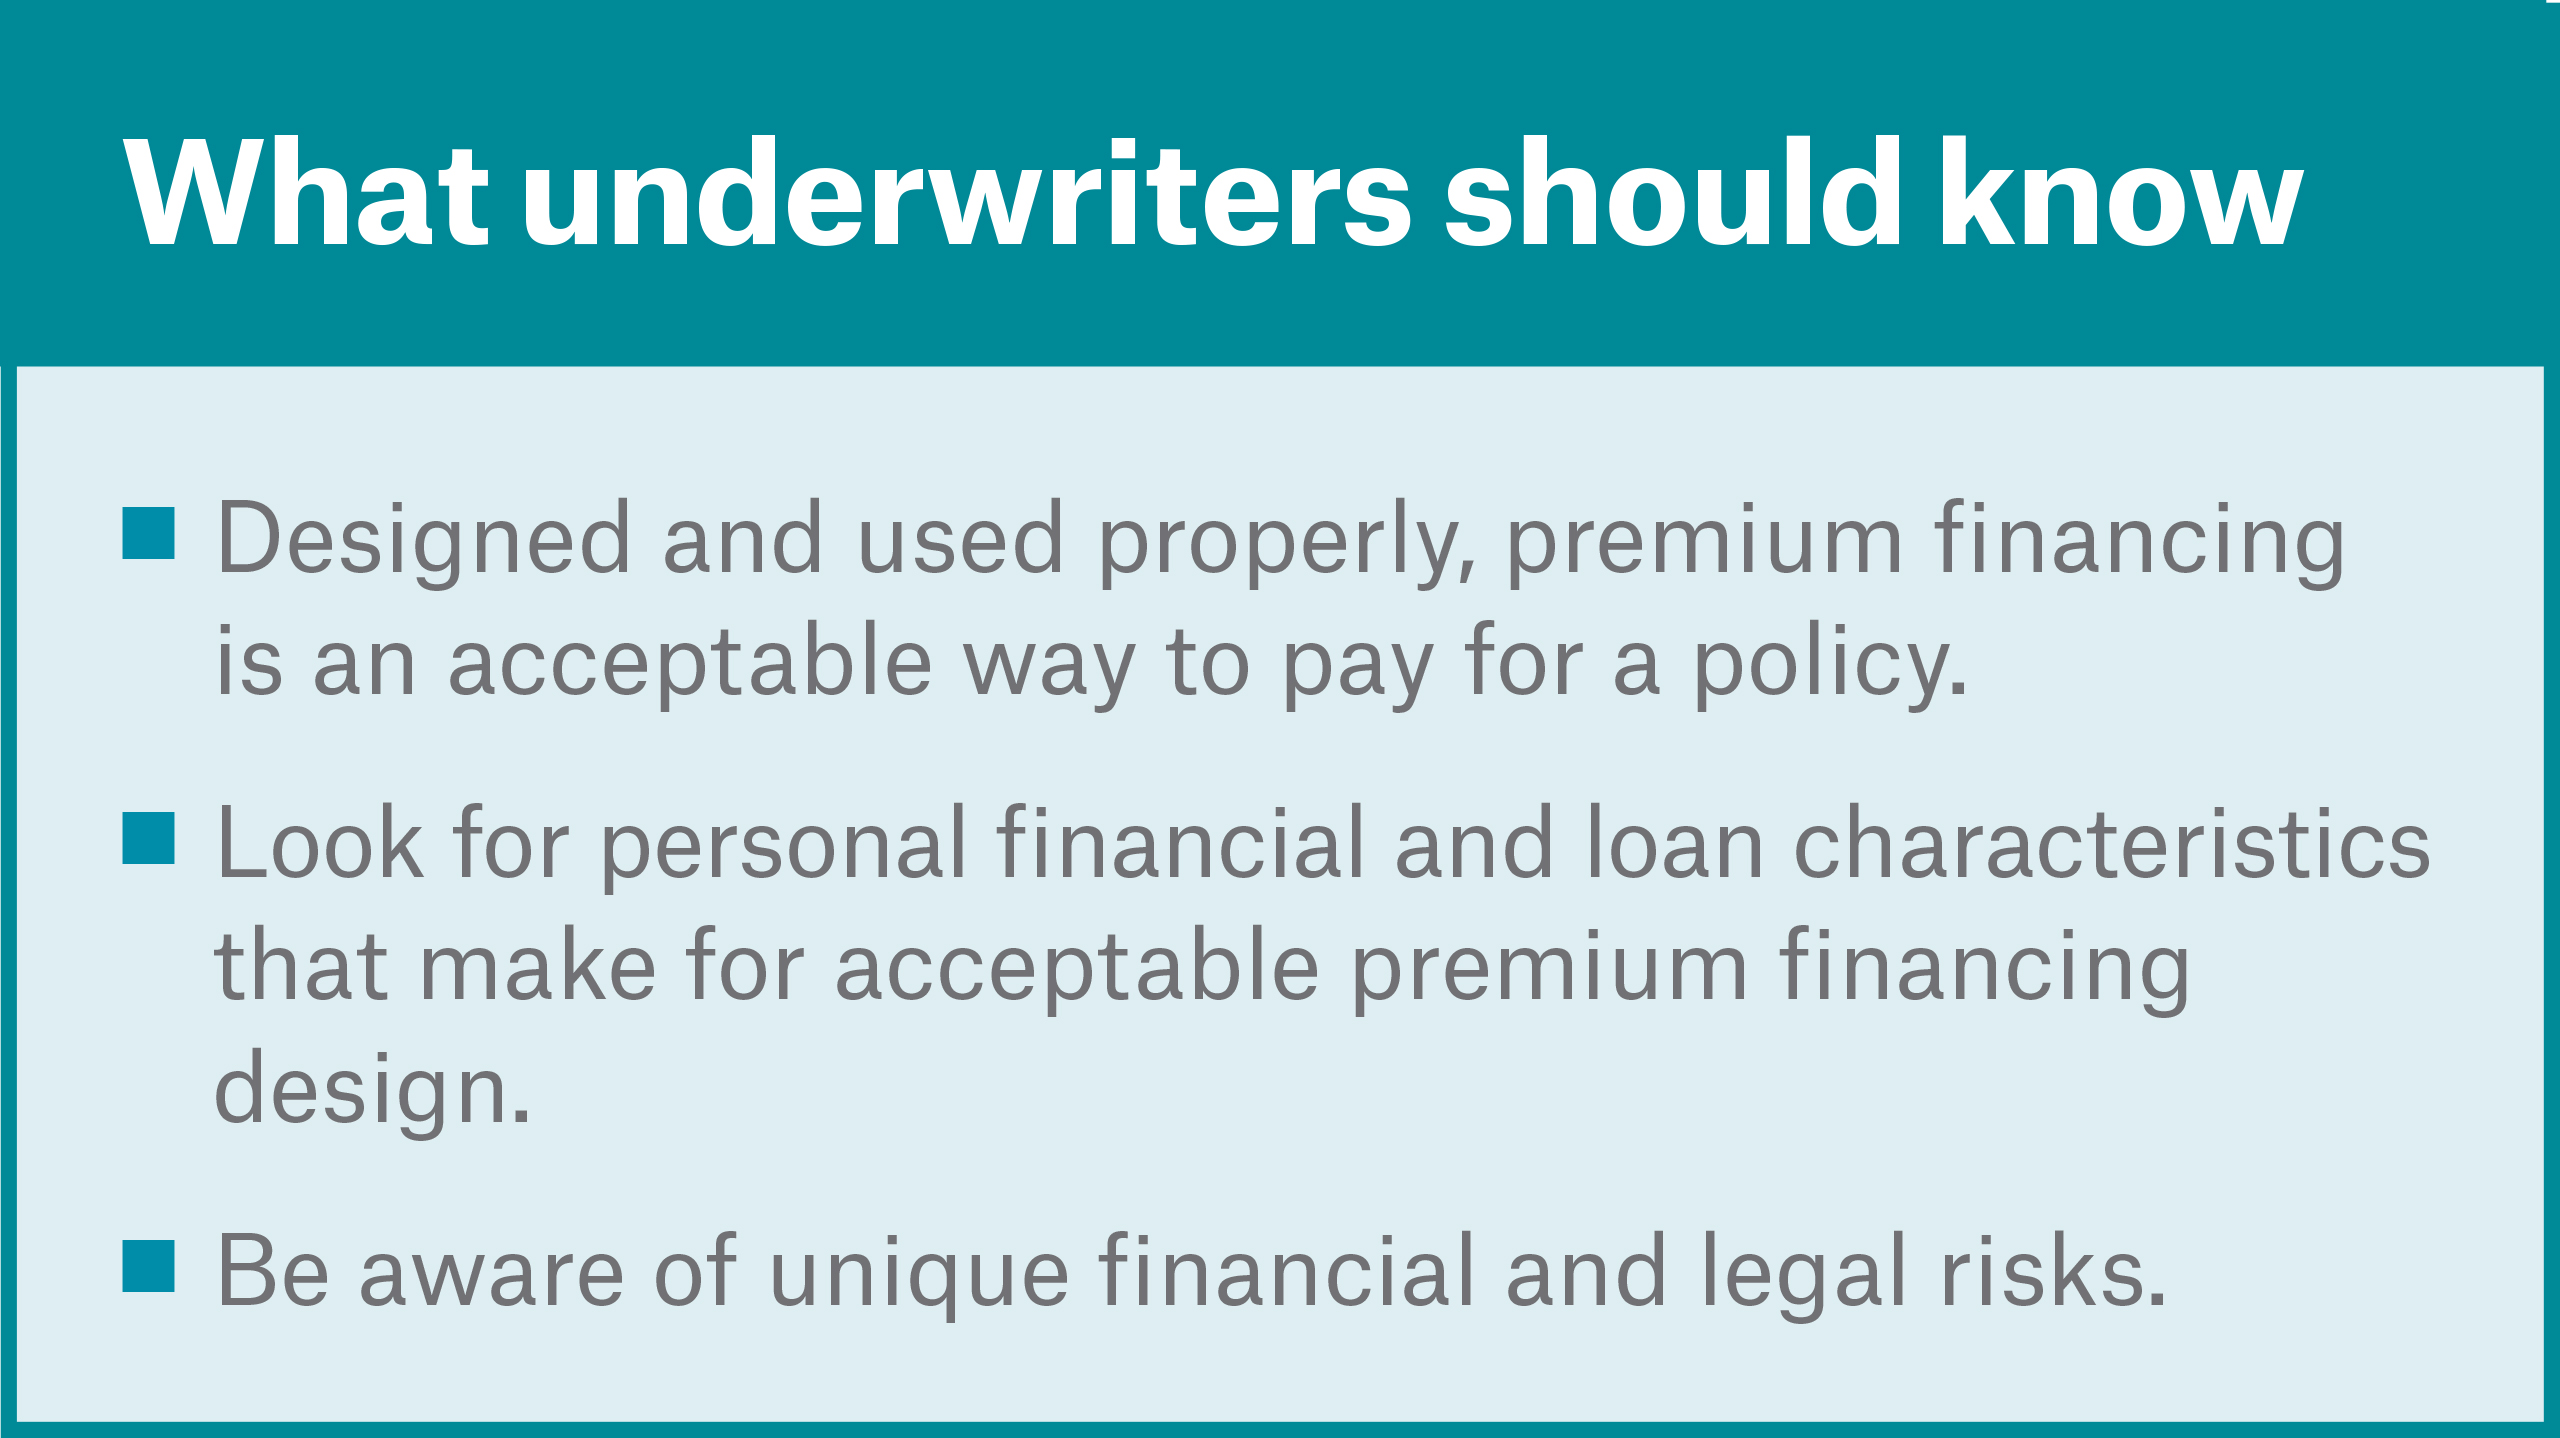 What underwriters should know image